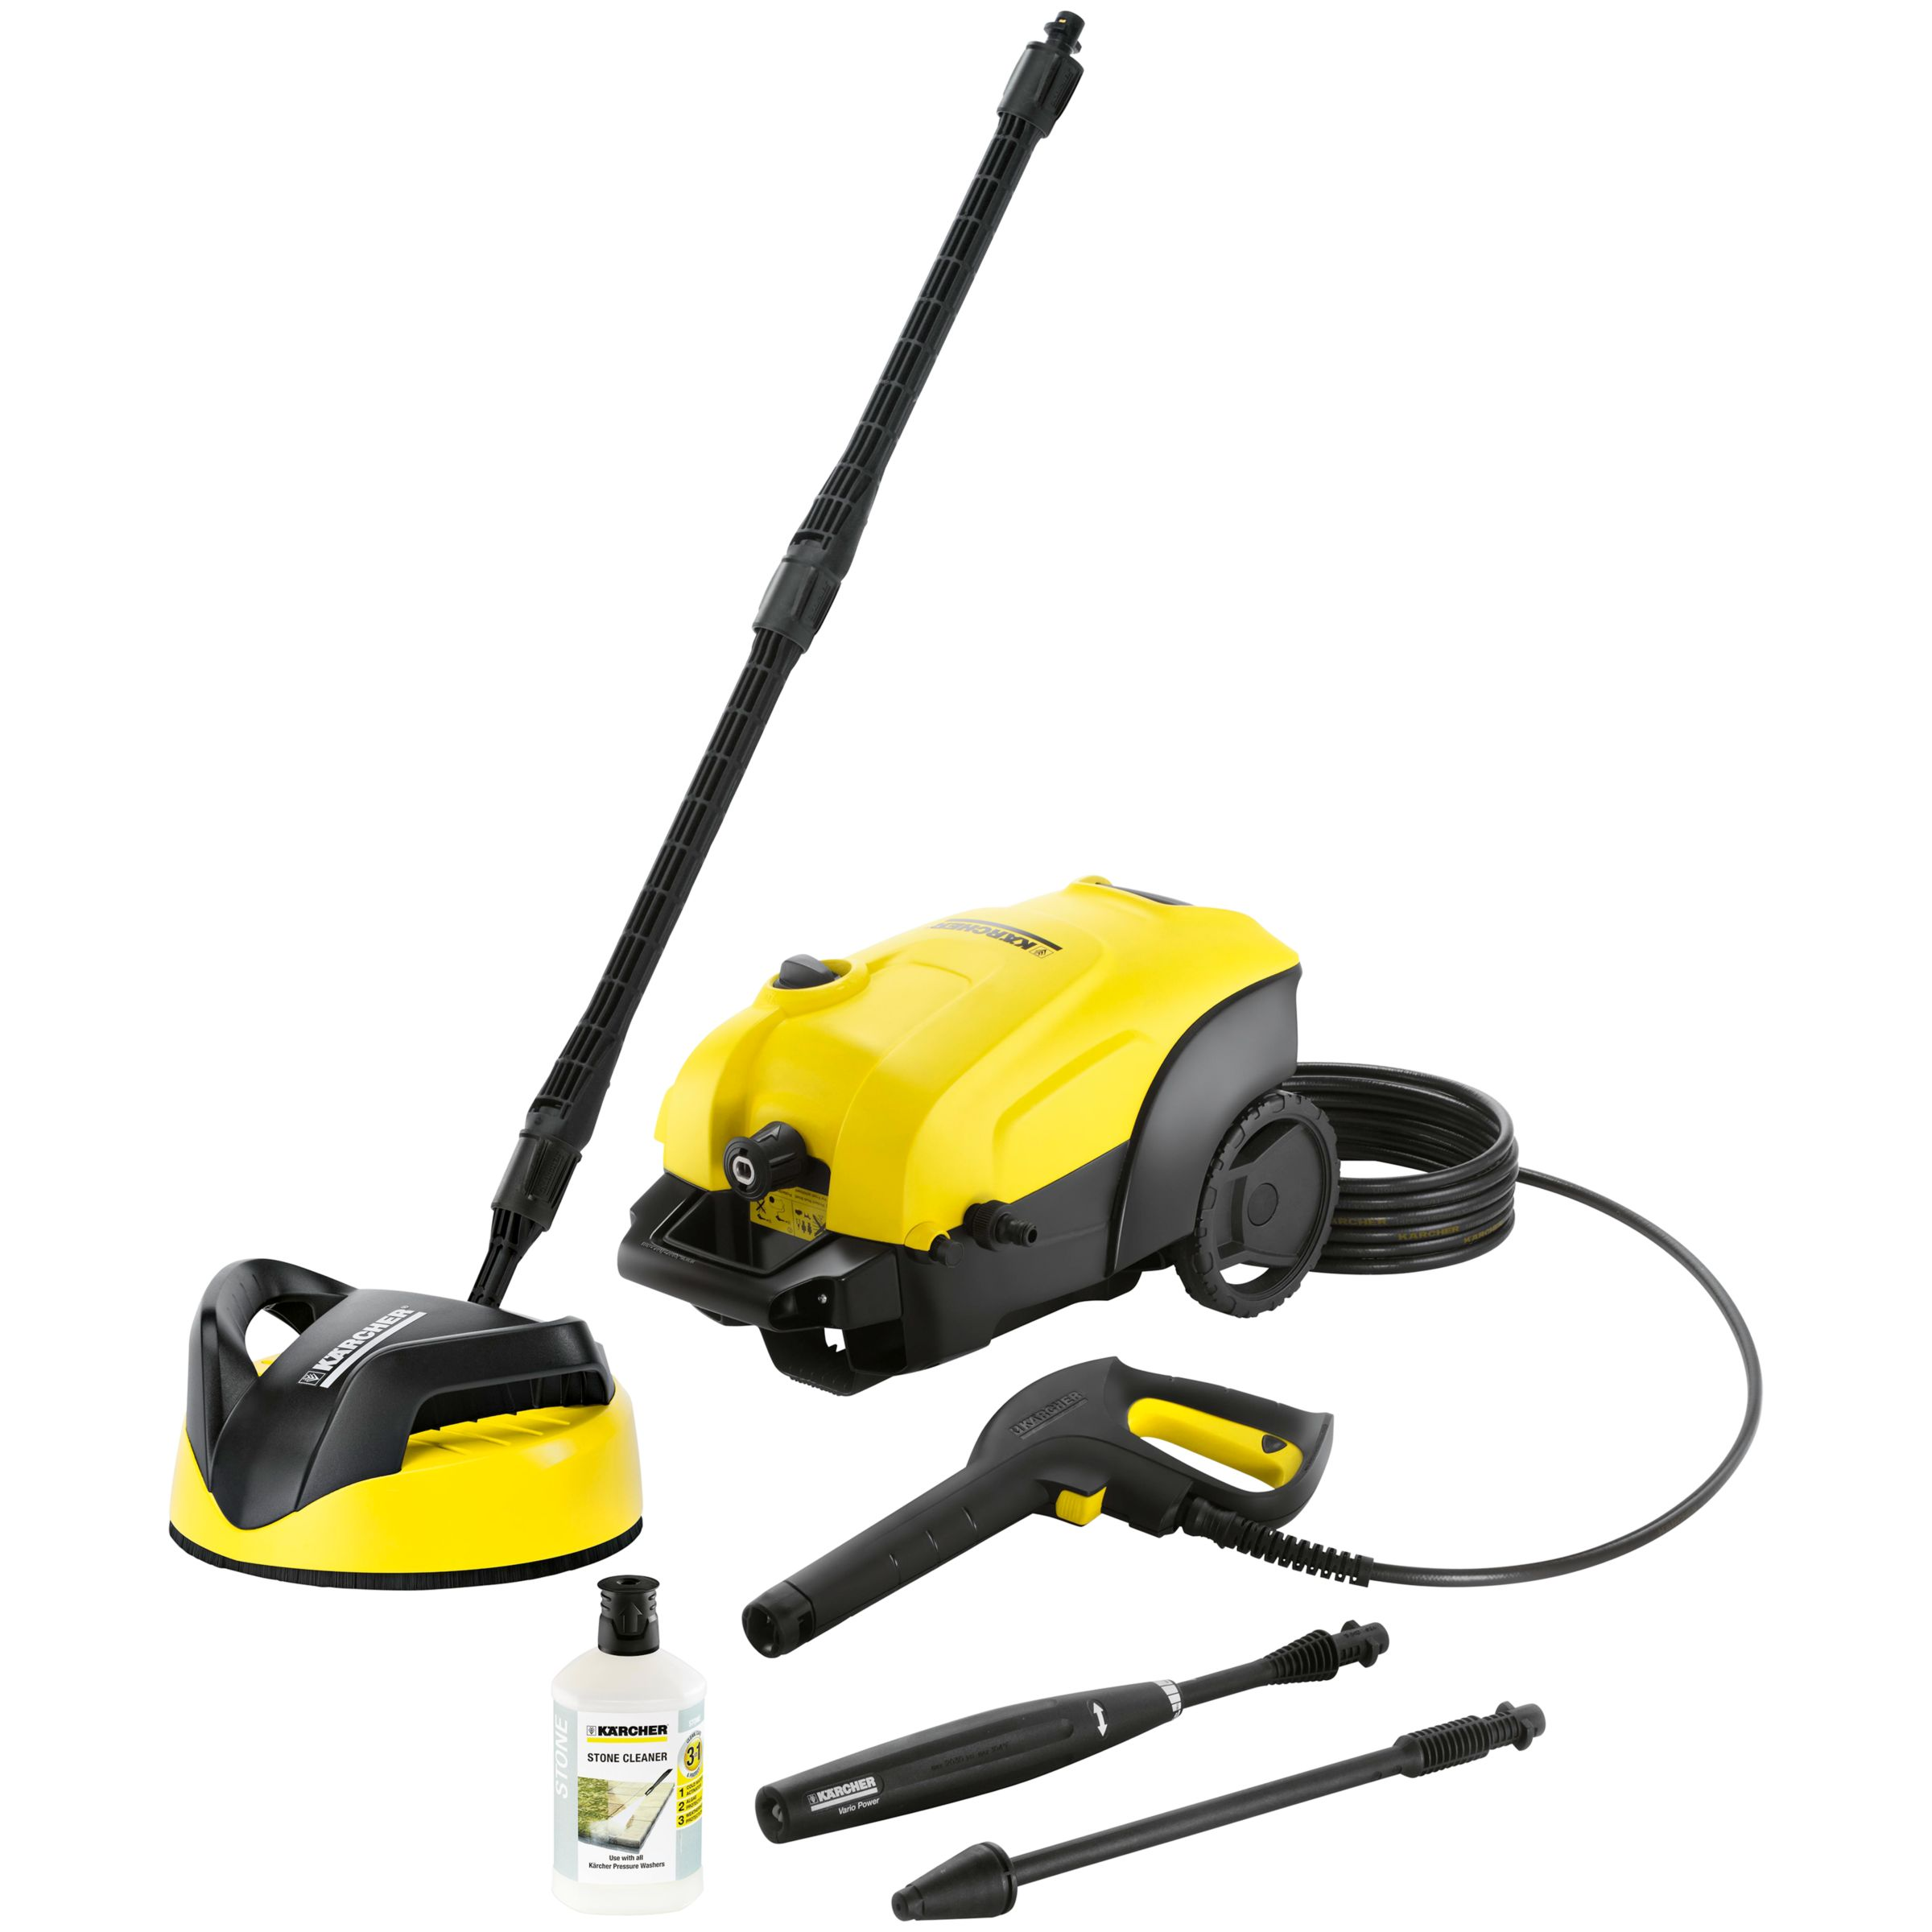 Kärcher K4 Compact Home Pressure Washer